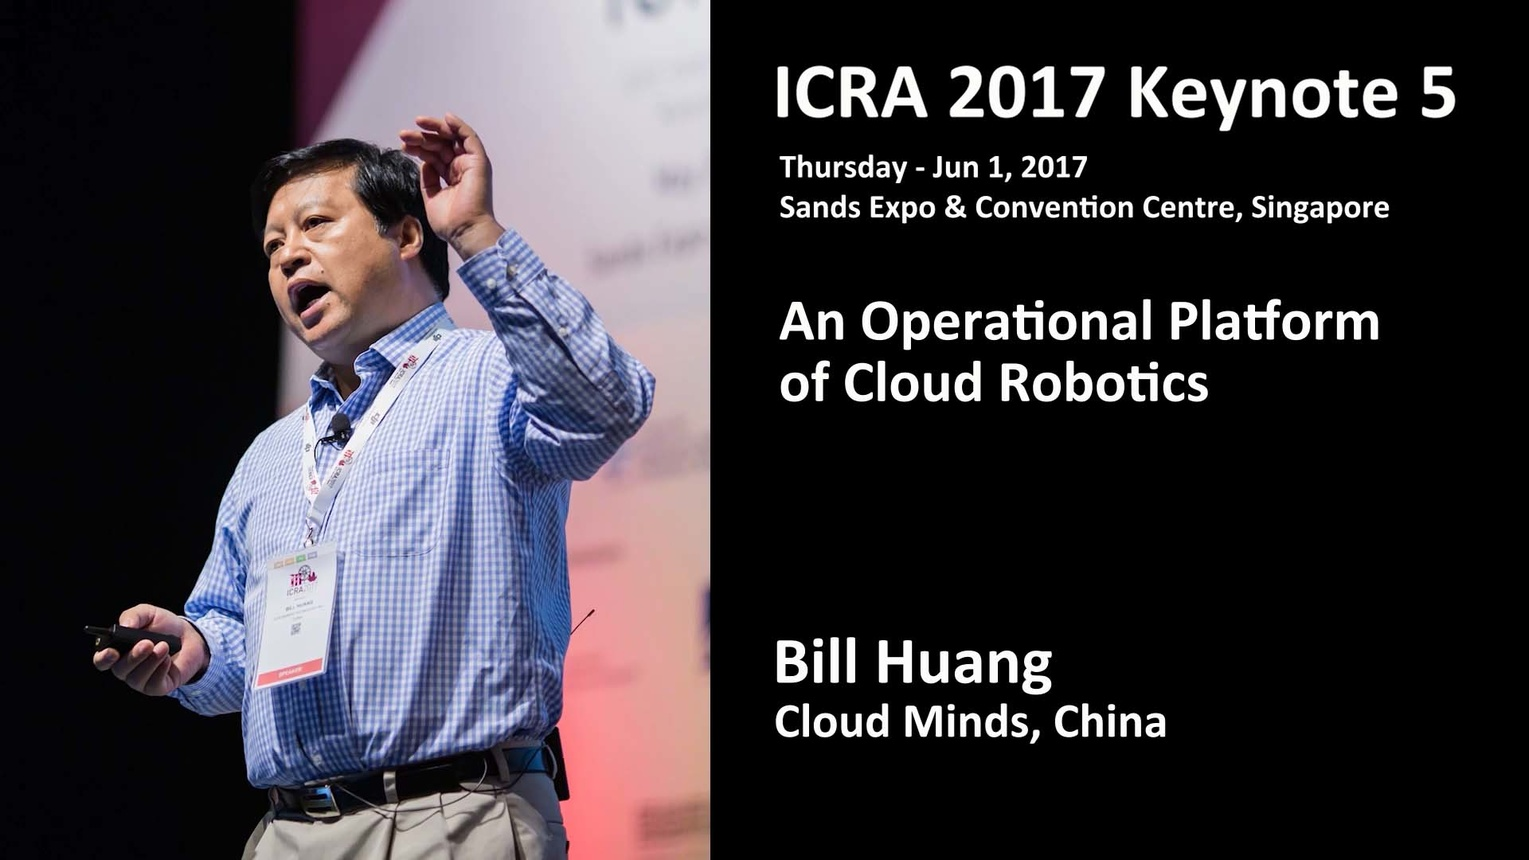 An Operational Platform of Cloud Robotics